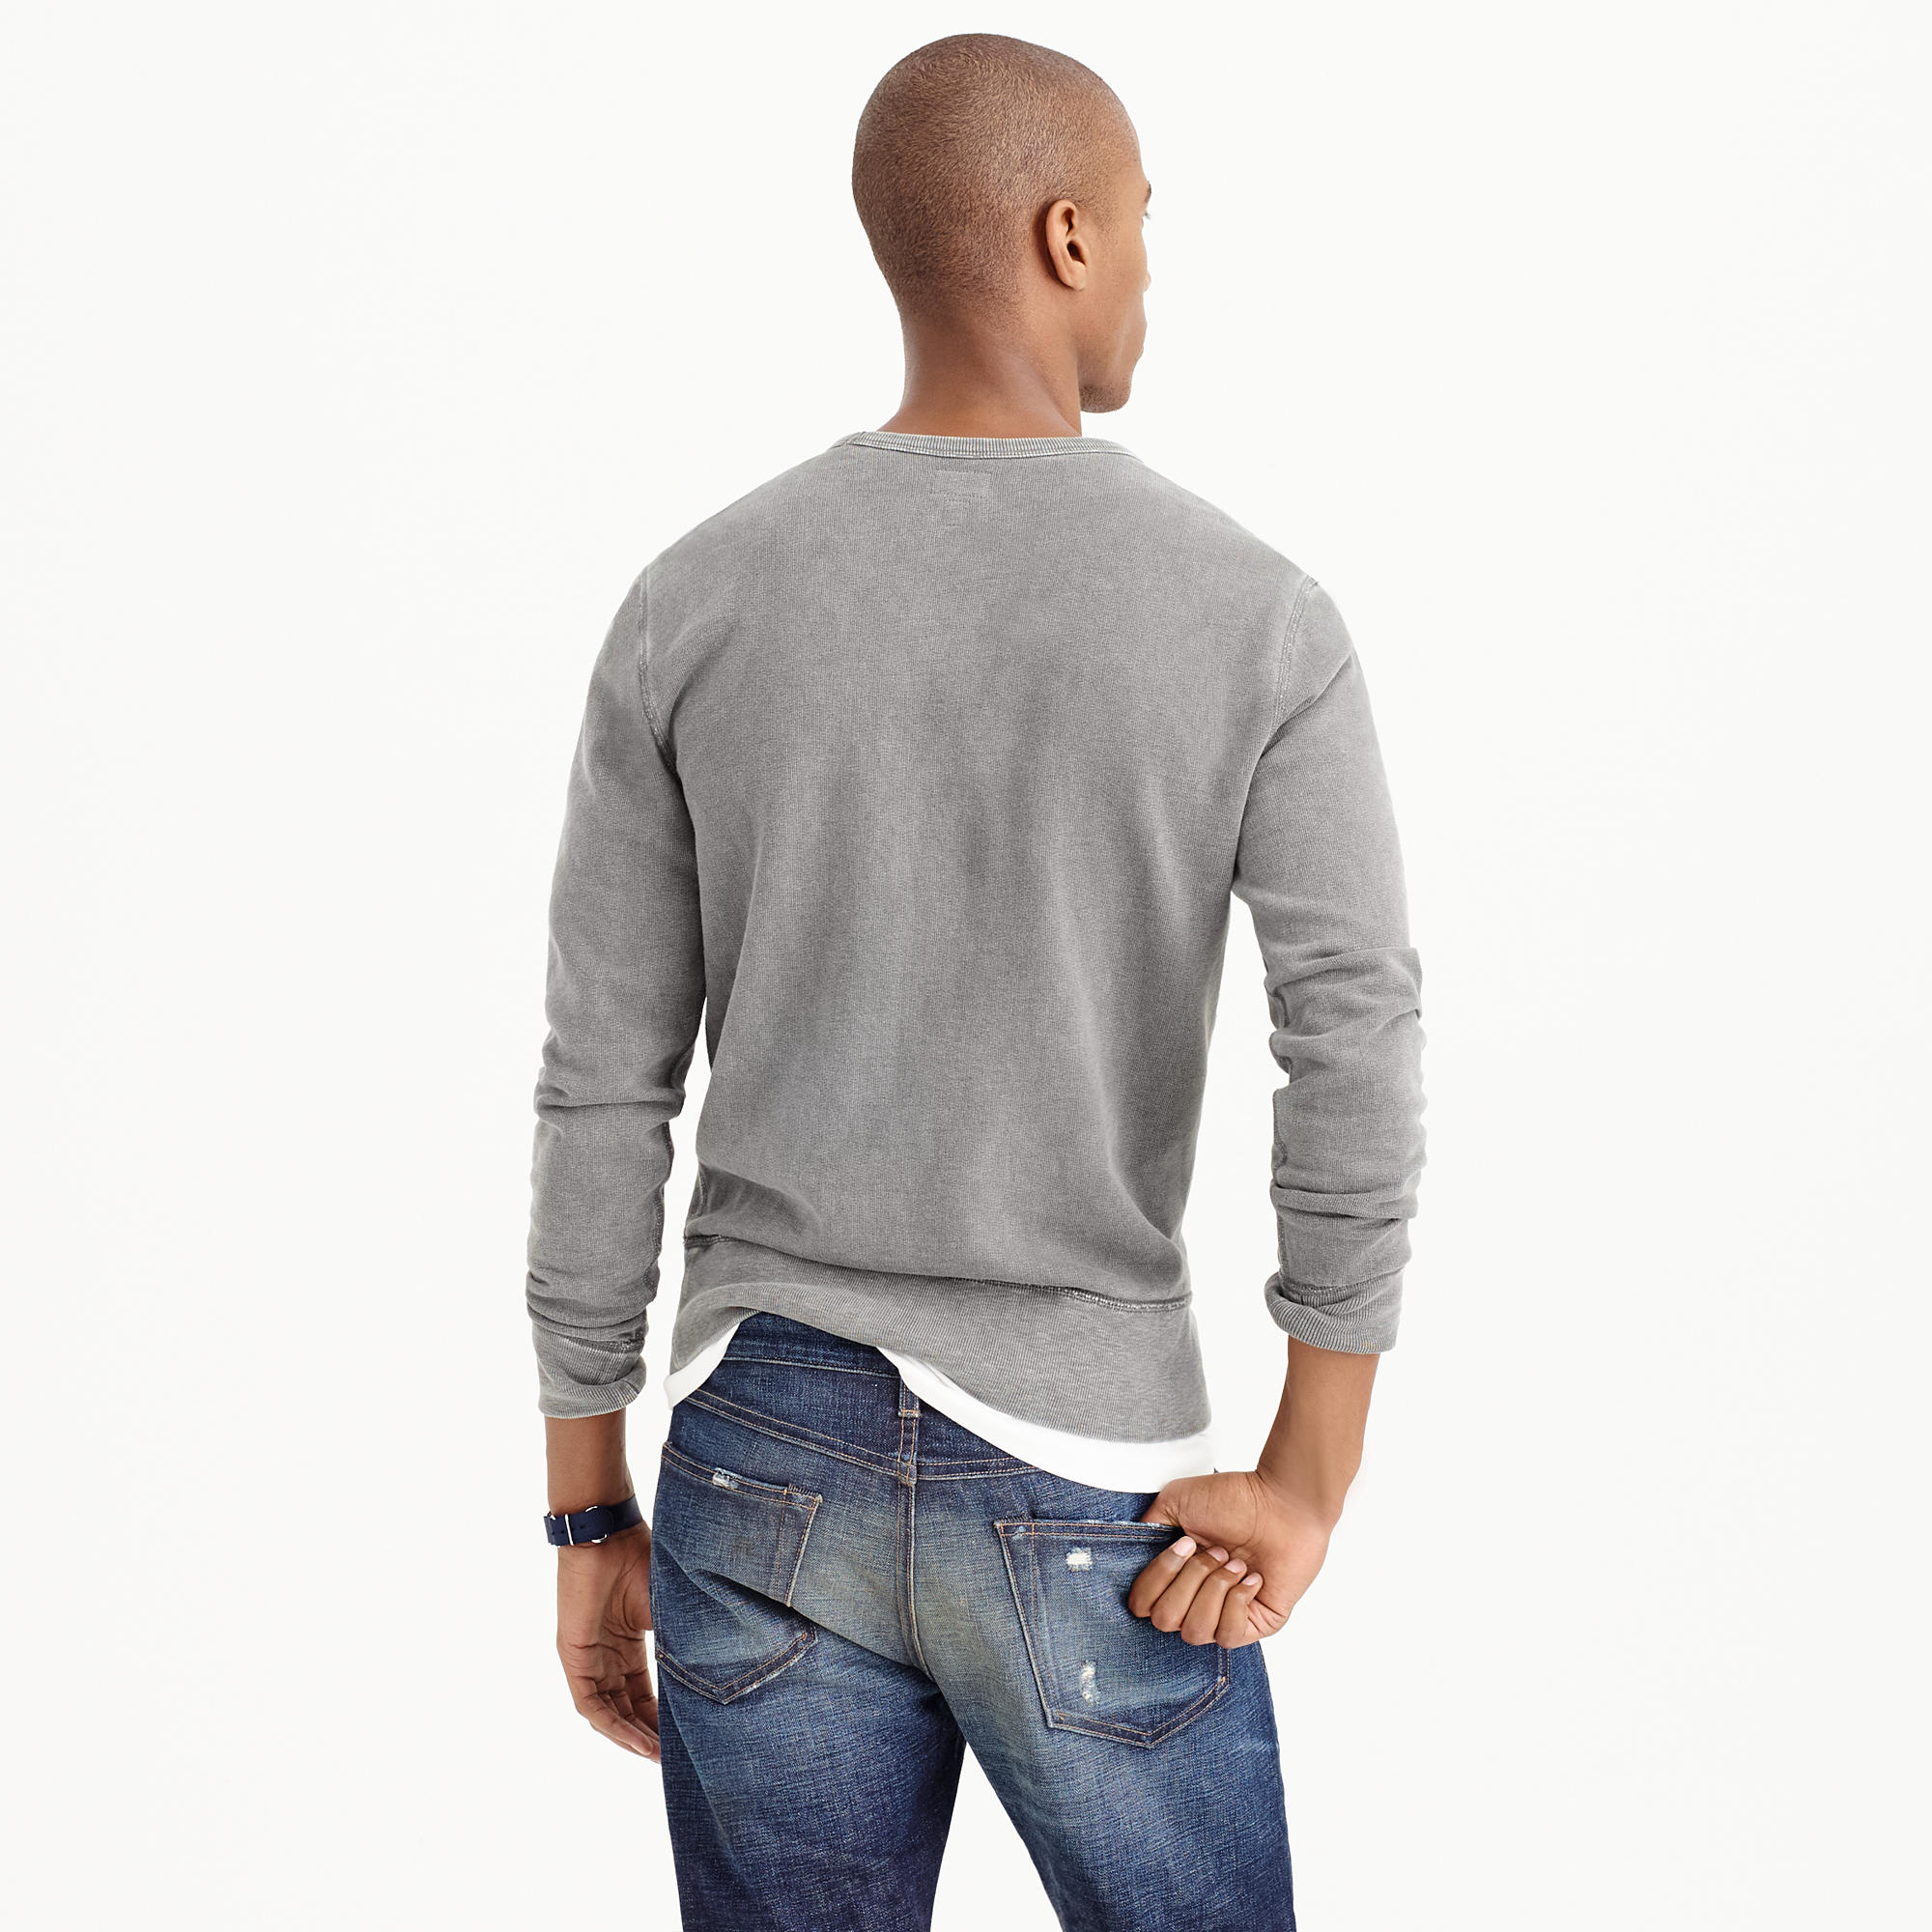 J Crew New York Sweatshirt In Gray For Men Lyst